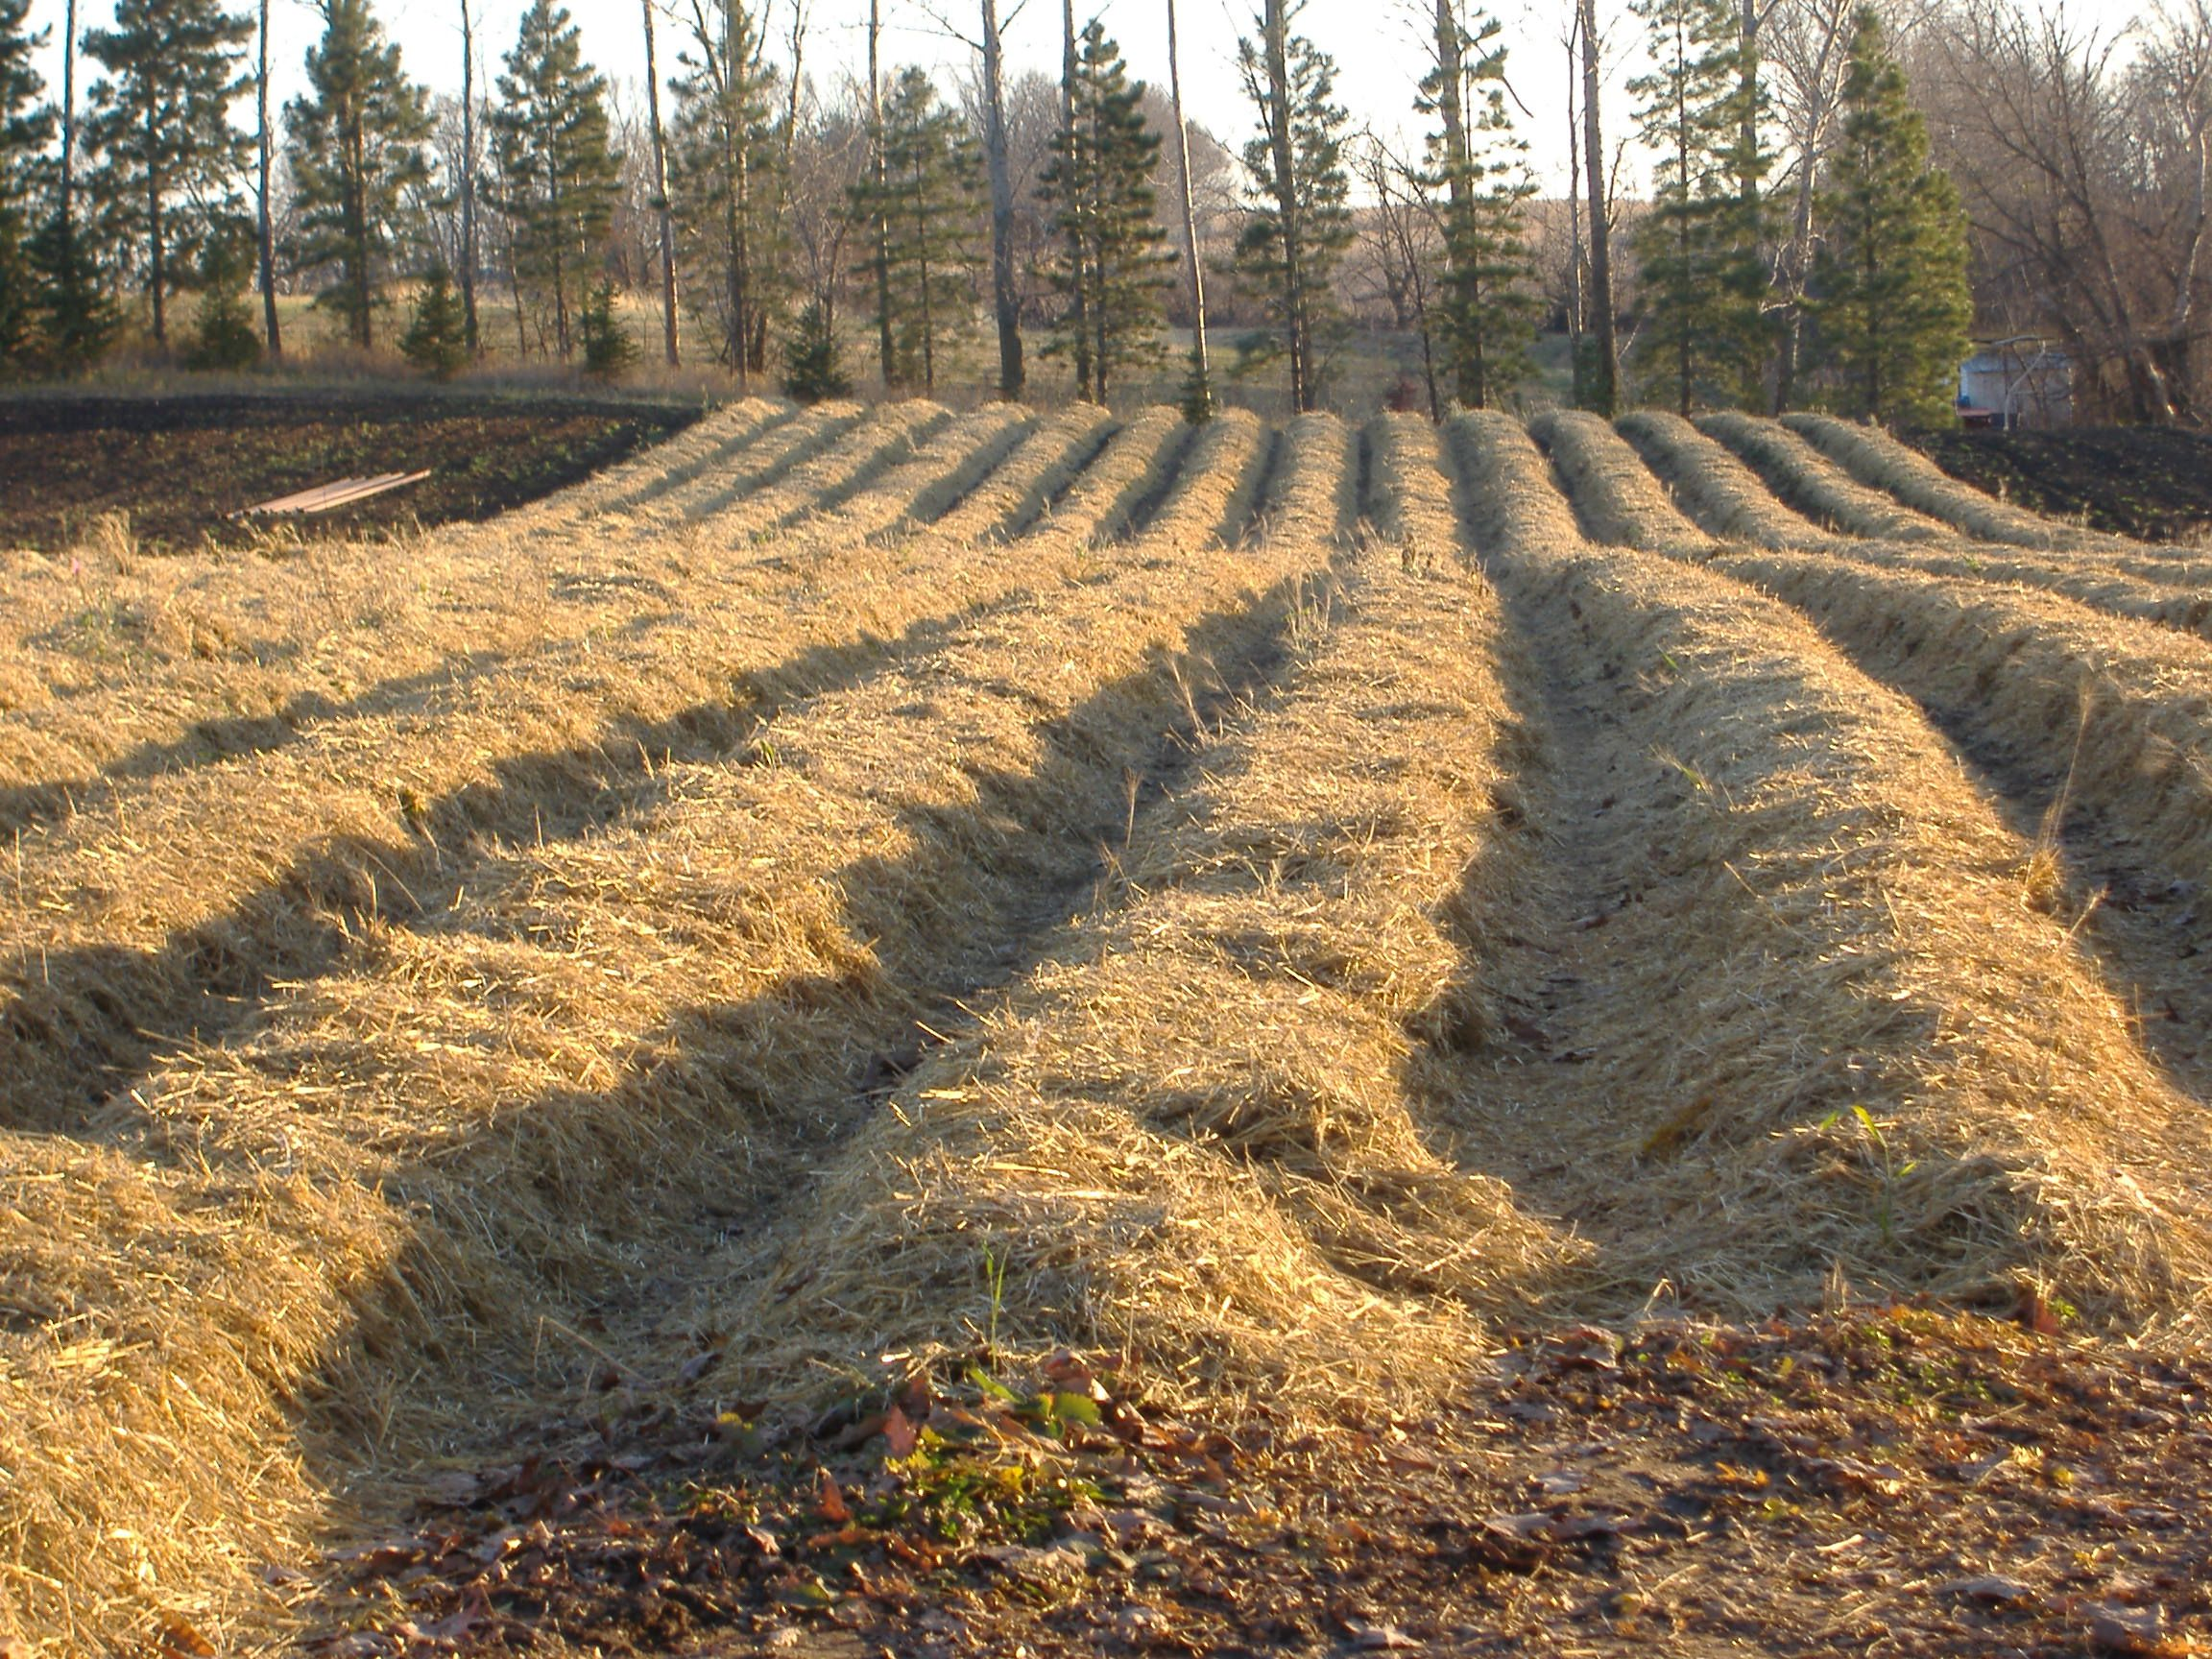 cover strawberries with mulch during the winter gardening